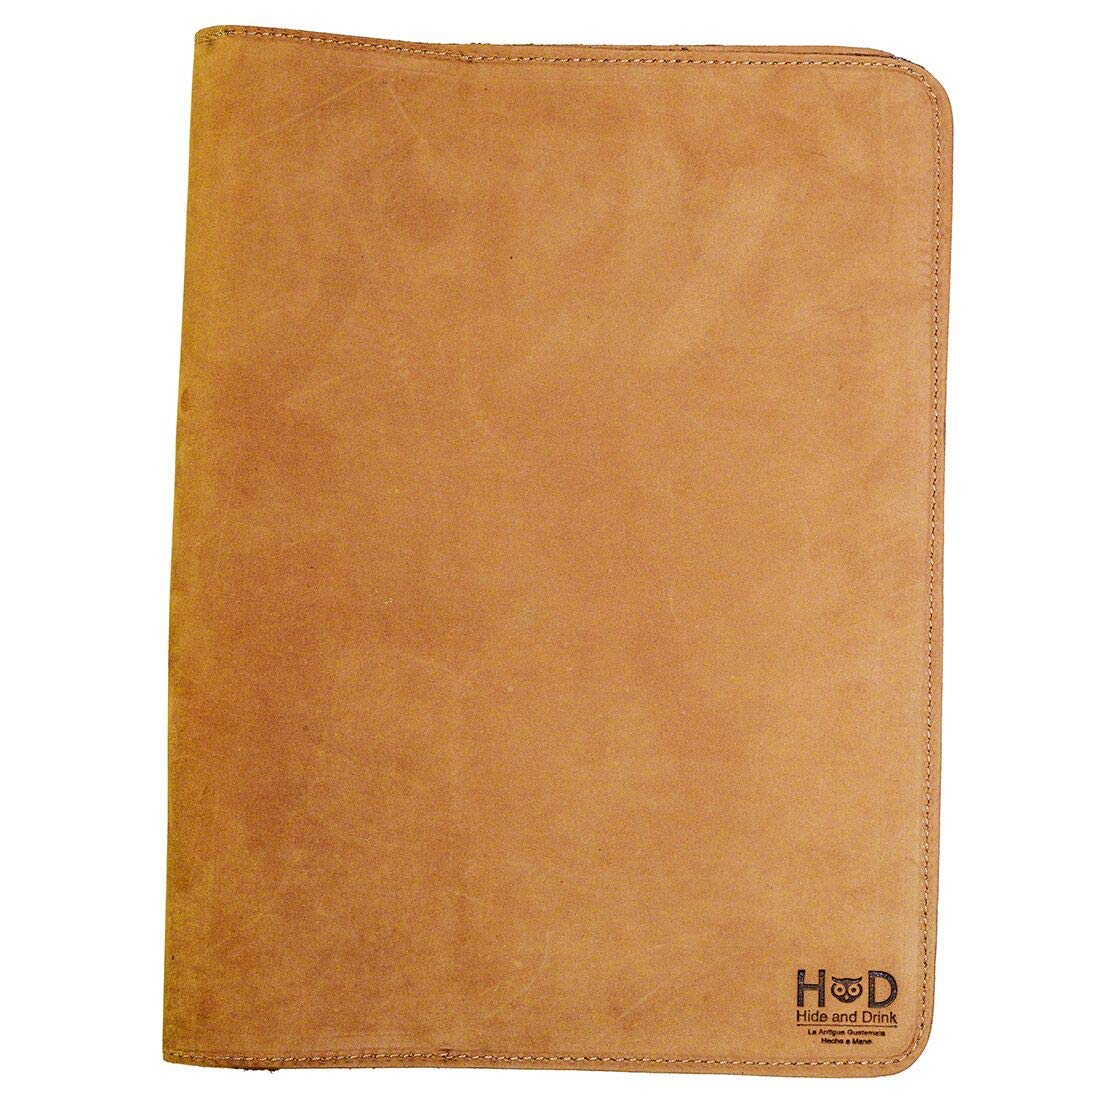 Hide & Drink, Rustic Leather Refillable Journal Cover for Moleskine Cahier XL (7.5 x 9.75 in.) Handmade Includes 101 Year Warranty :: Old Tobacco